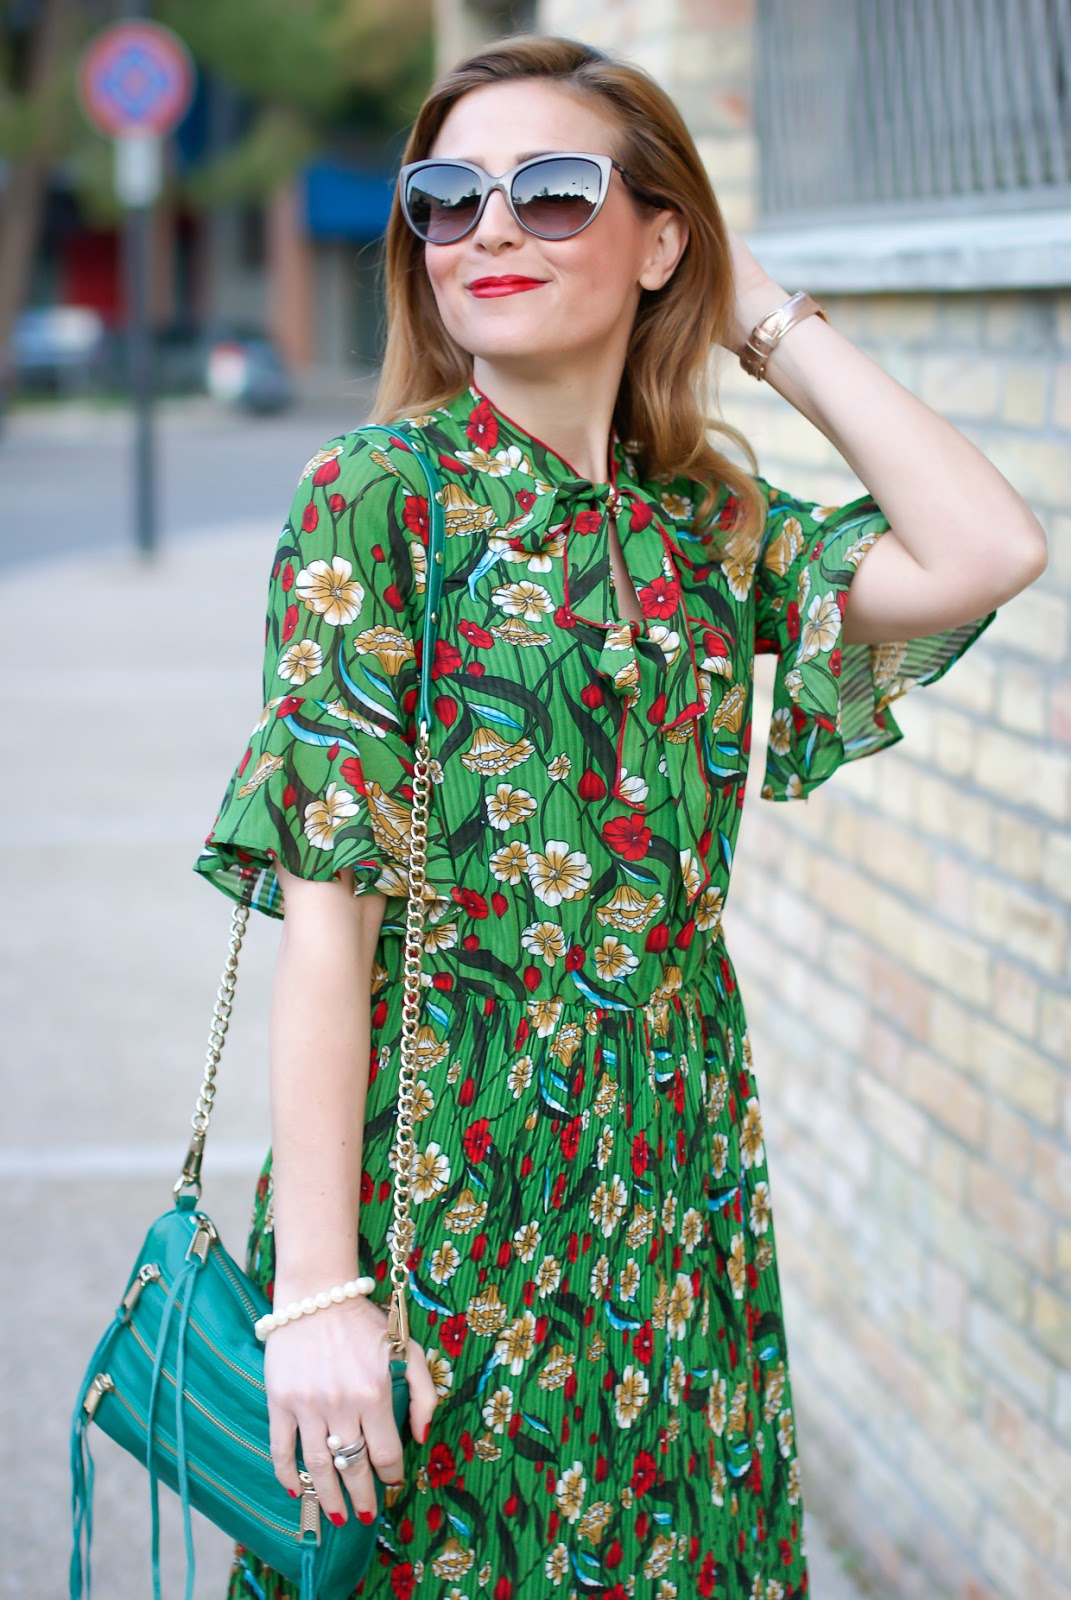 Metisu green pleated midi dress with flared sleeves on Fashion and Cookies fashion blog, fashion blogger style